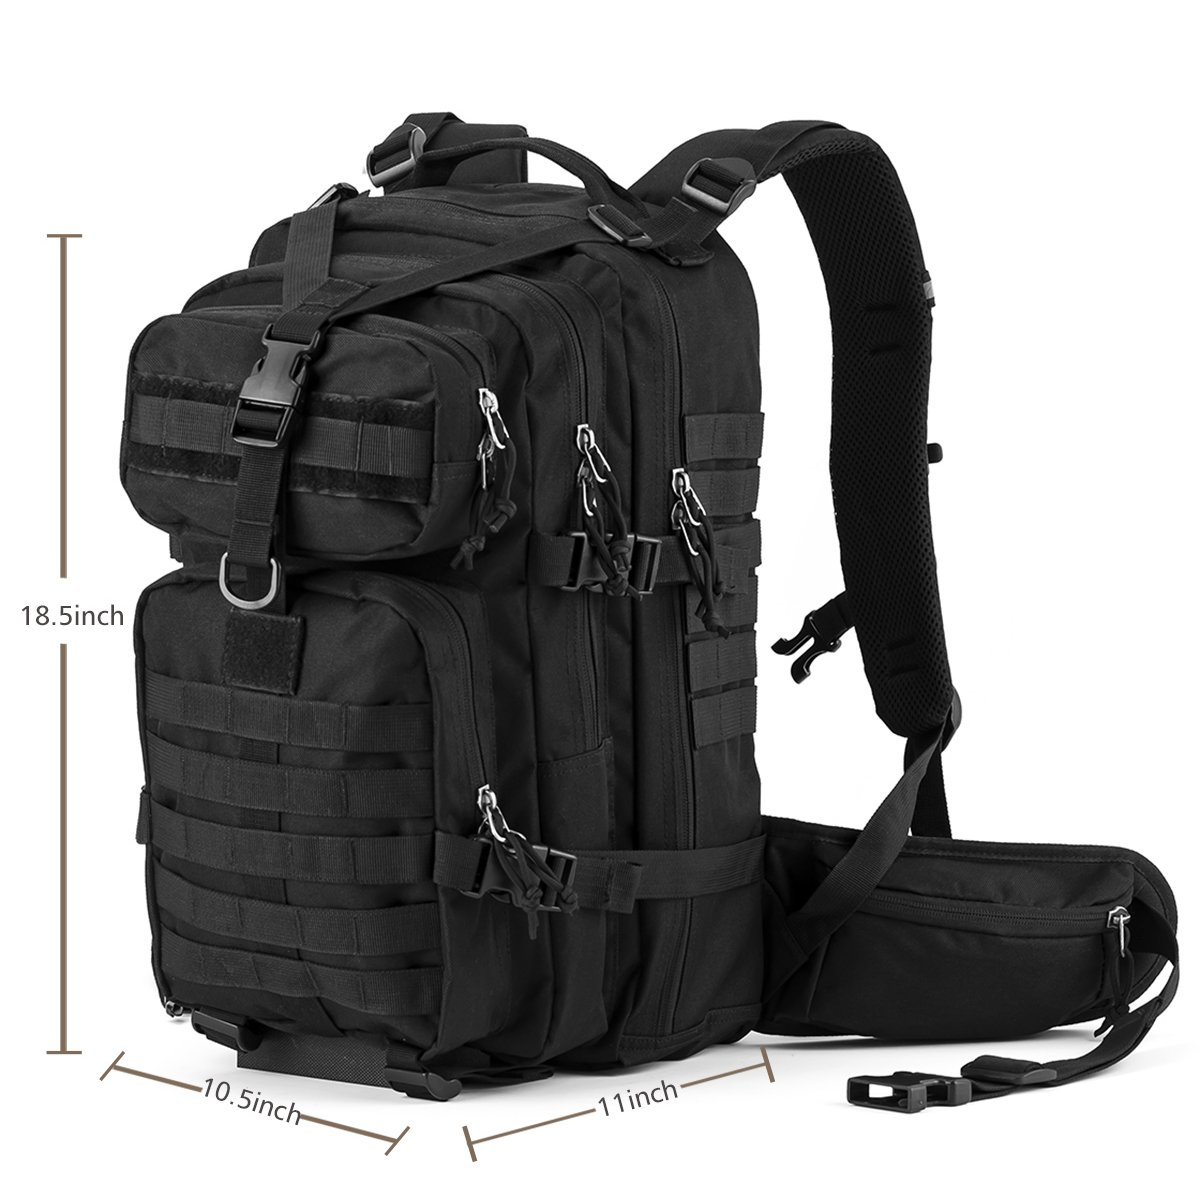 Gelindo Military Tactical Backpack, Hydration Backpack, Army Molle Bug-out Bag, Small Rucksack for Hunting, Survival, Camping, Trekking, 35L: Amazon.es: ...